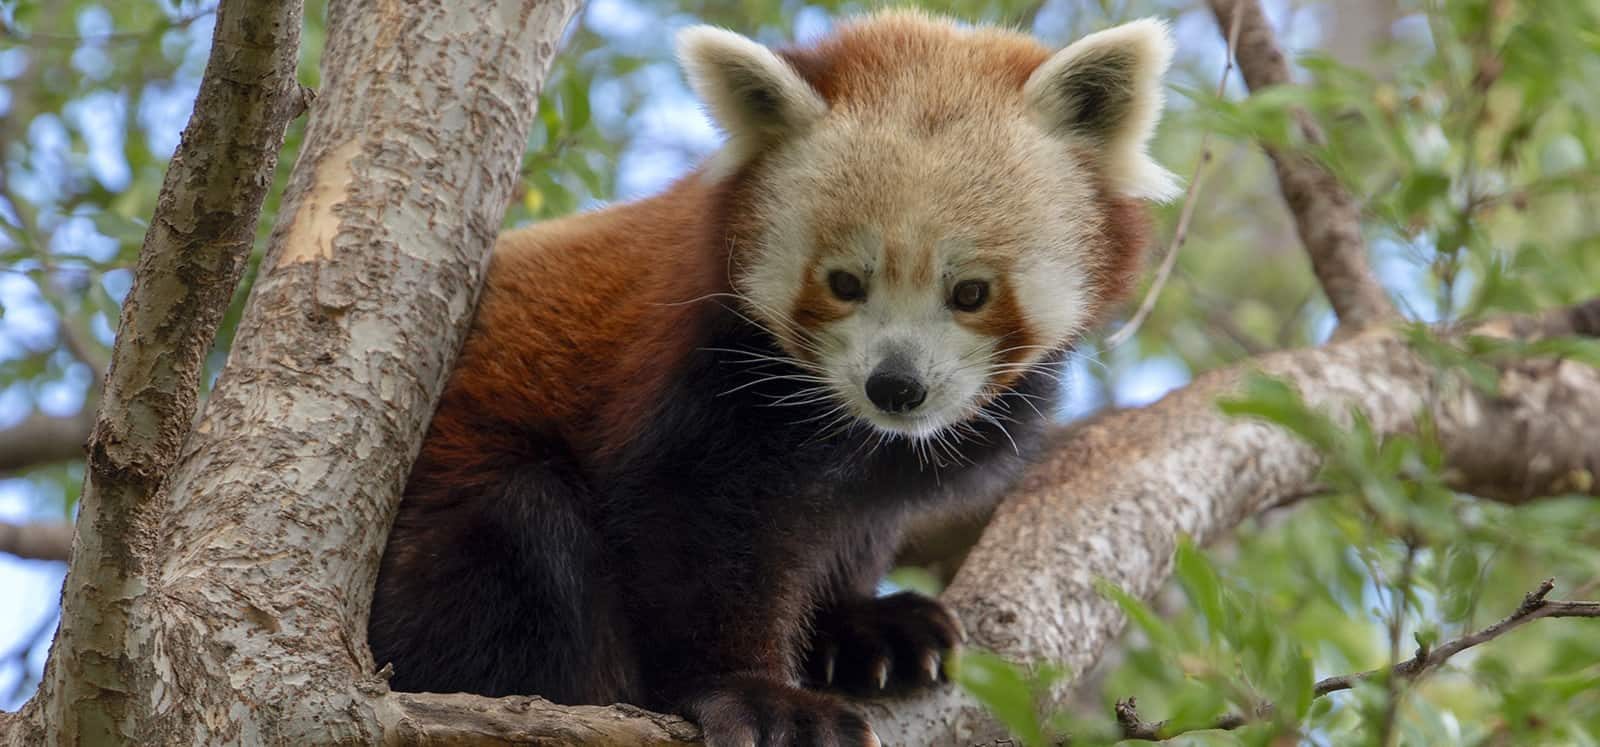 Red Panda perched in tree at Adelaide Zoo